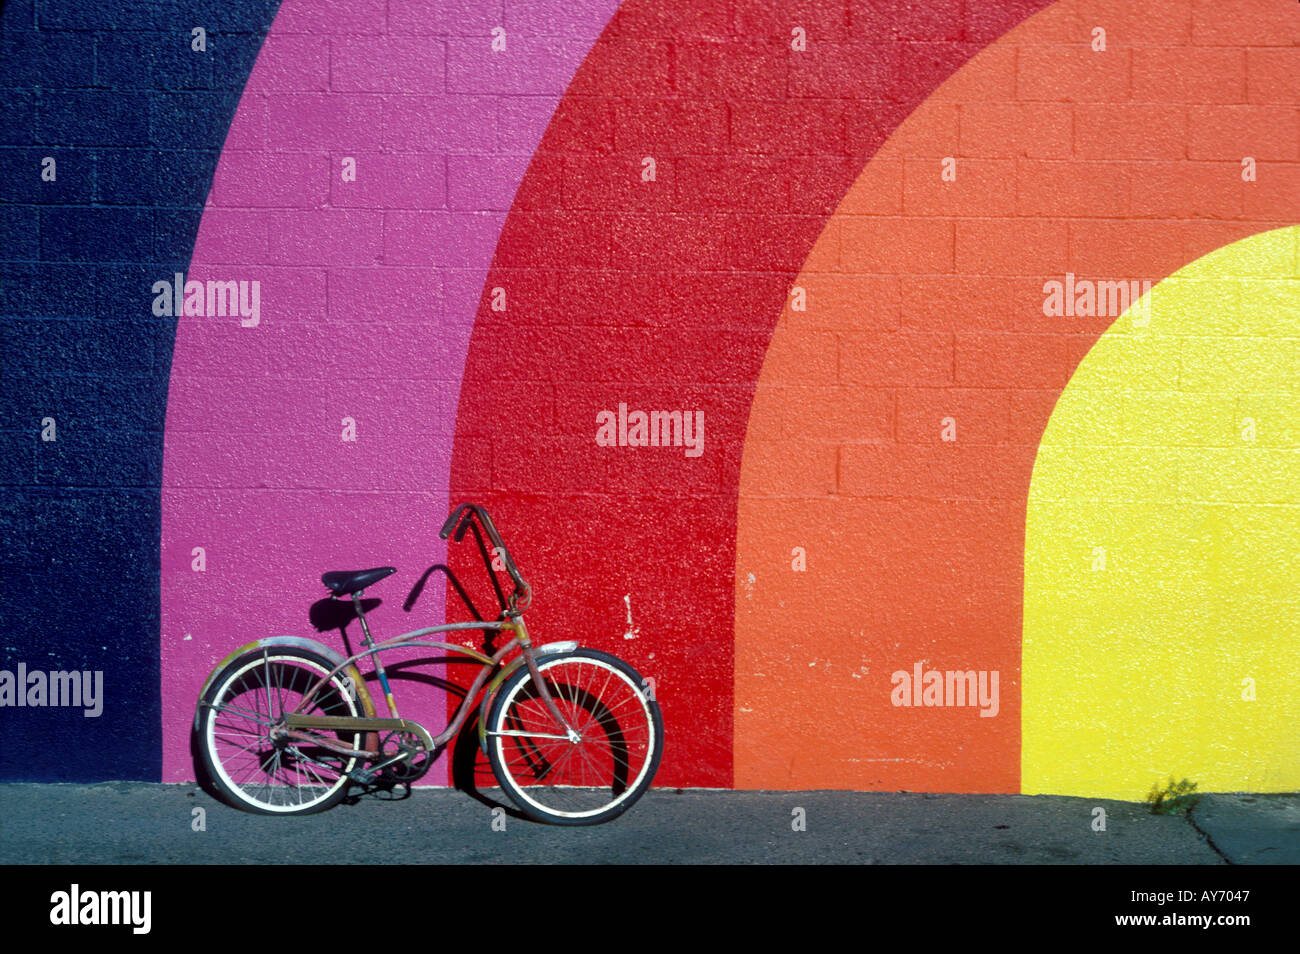 Old bike leaning against rainbow colored wall - Stock Image